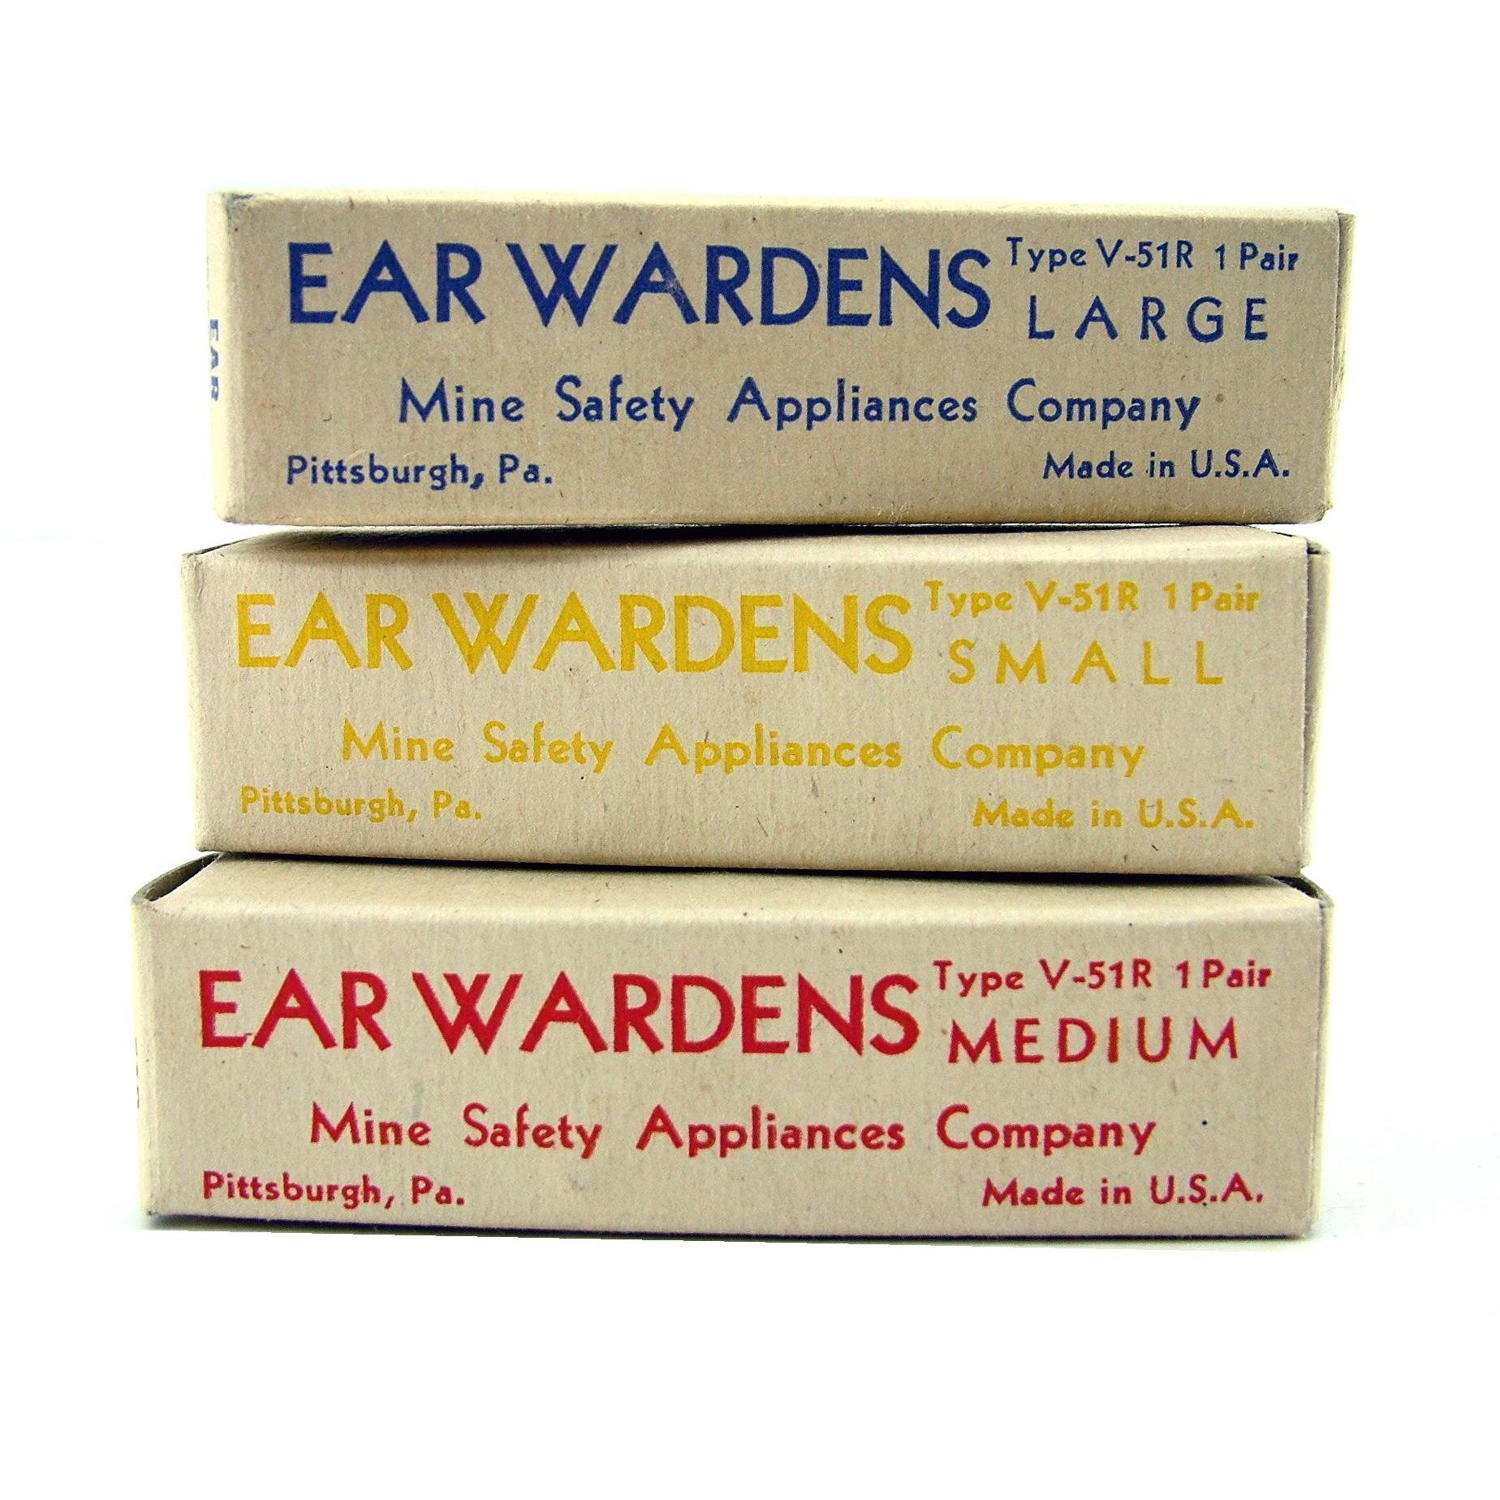 USAAF 'used' earplugs, boxed